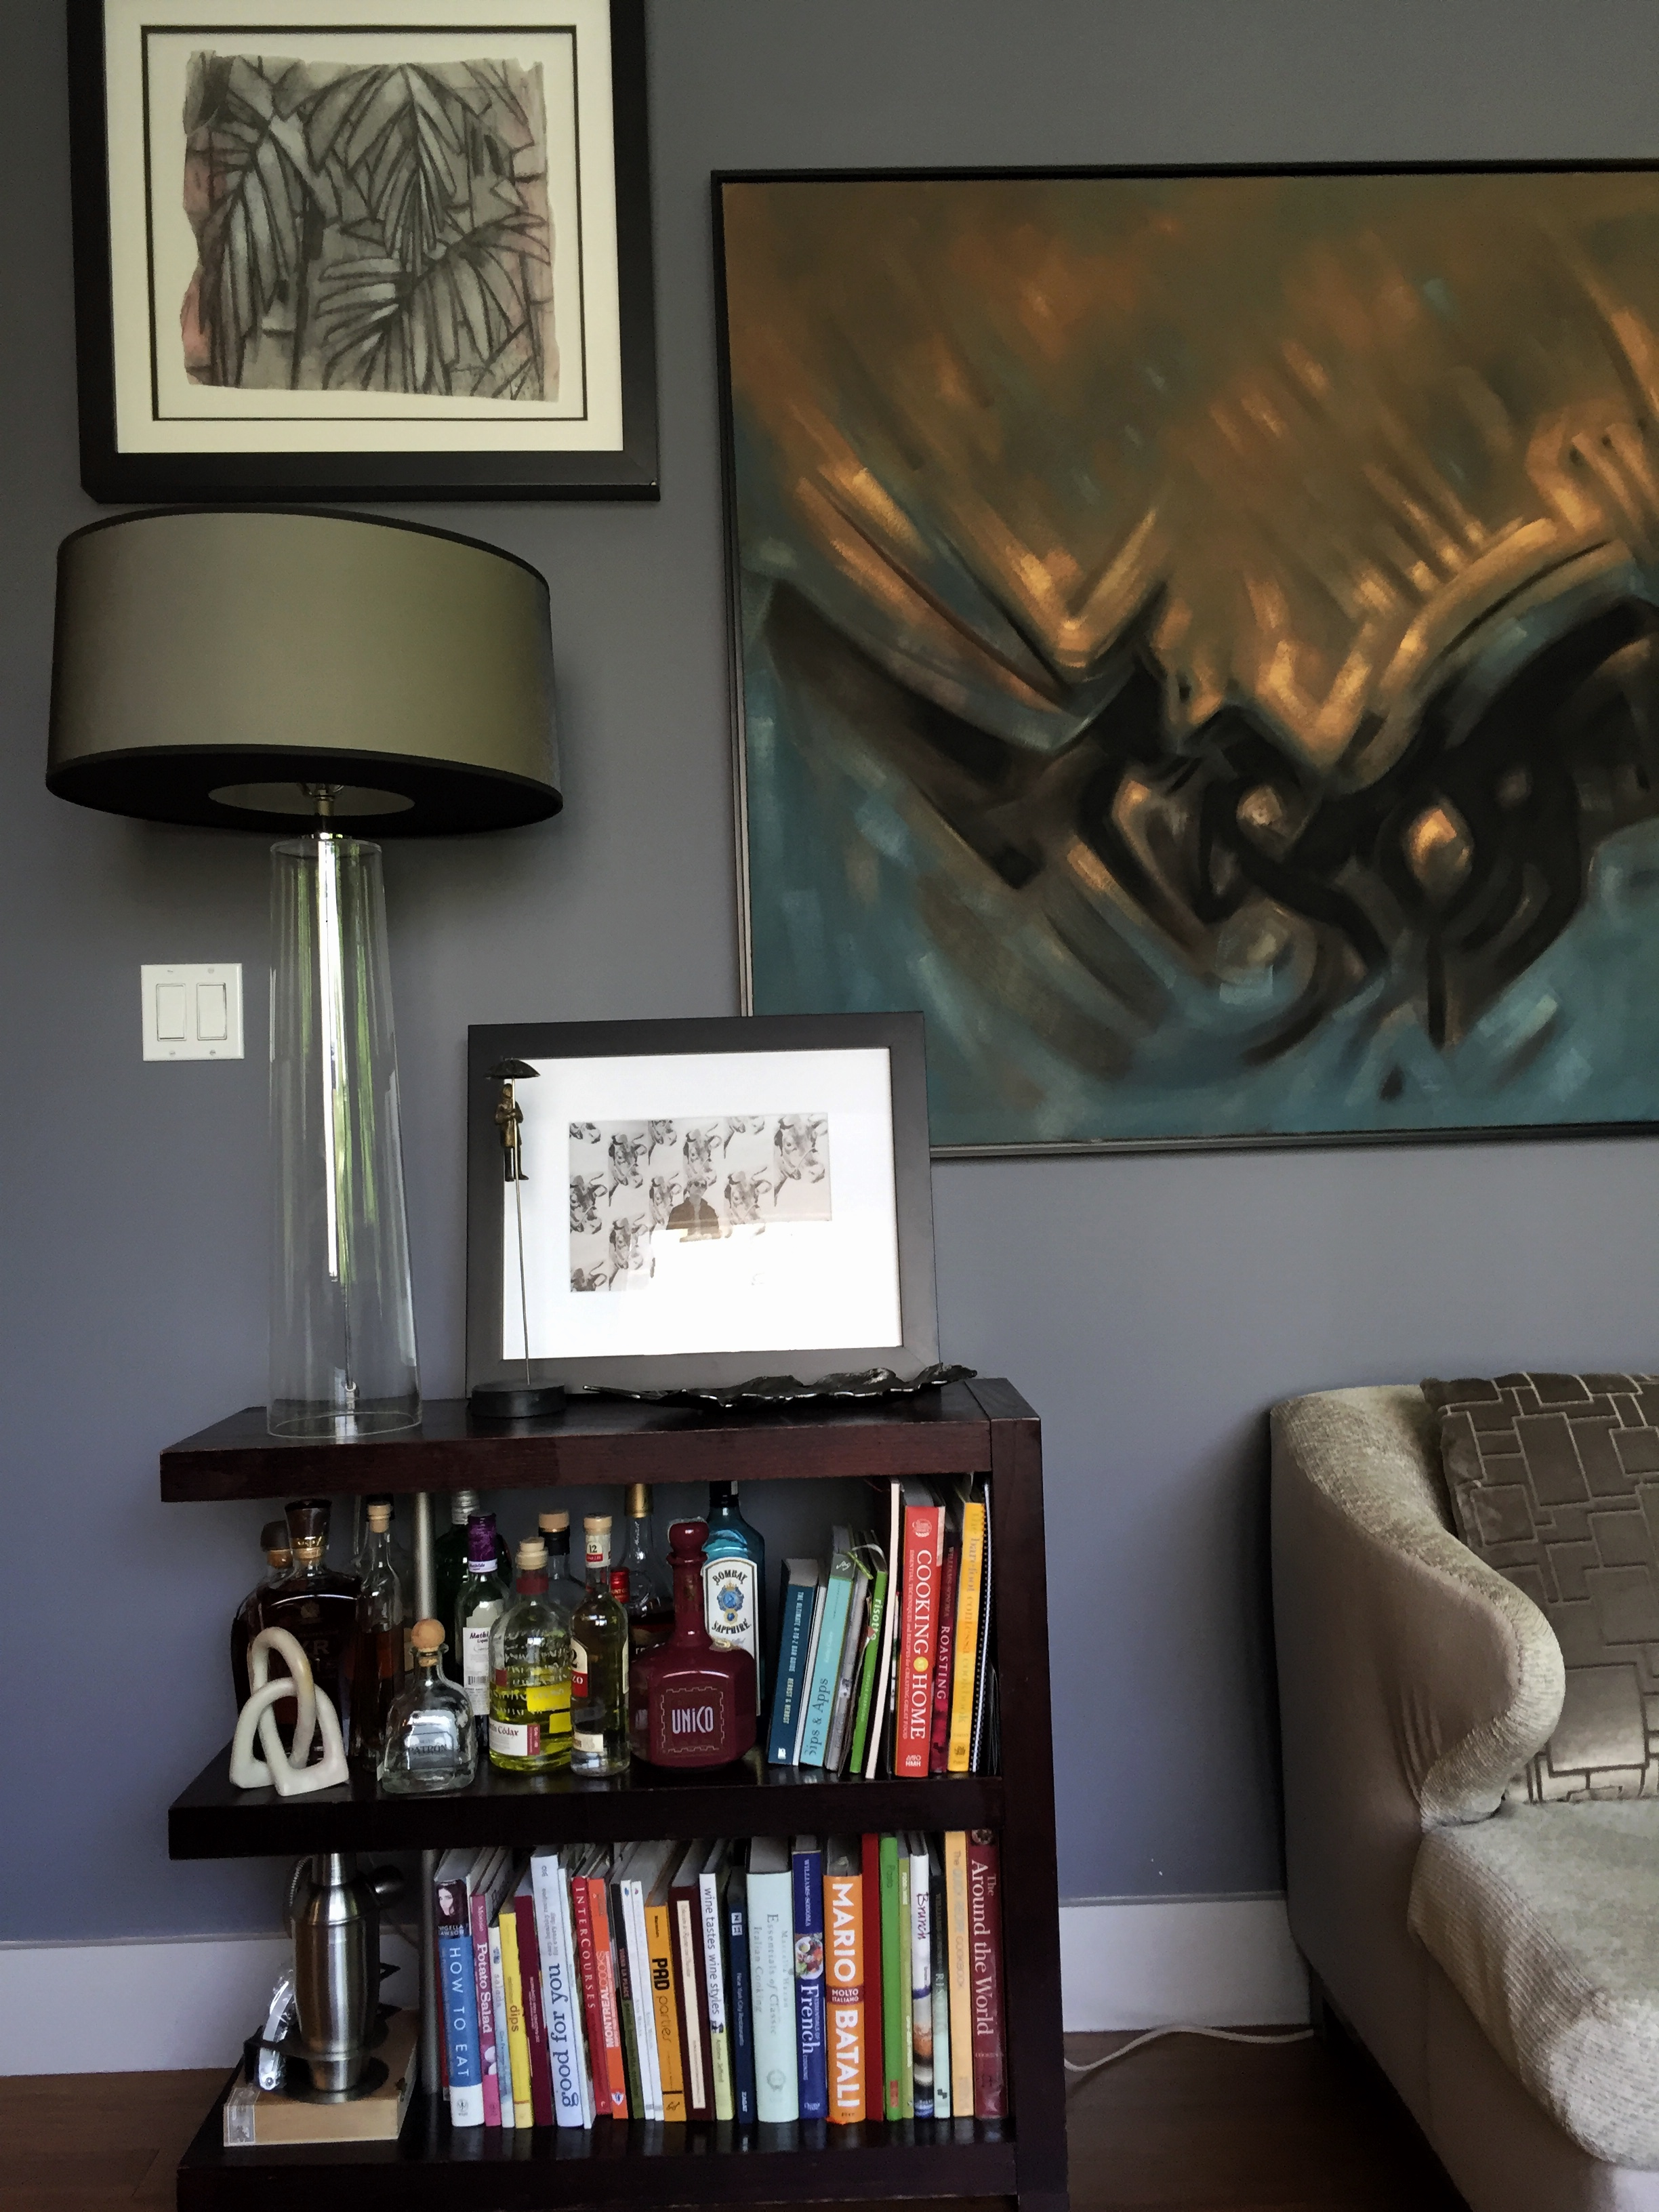 A small bookshelf is handy for entertaining and is topped by a Warhol photo.